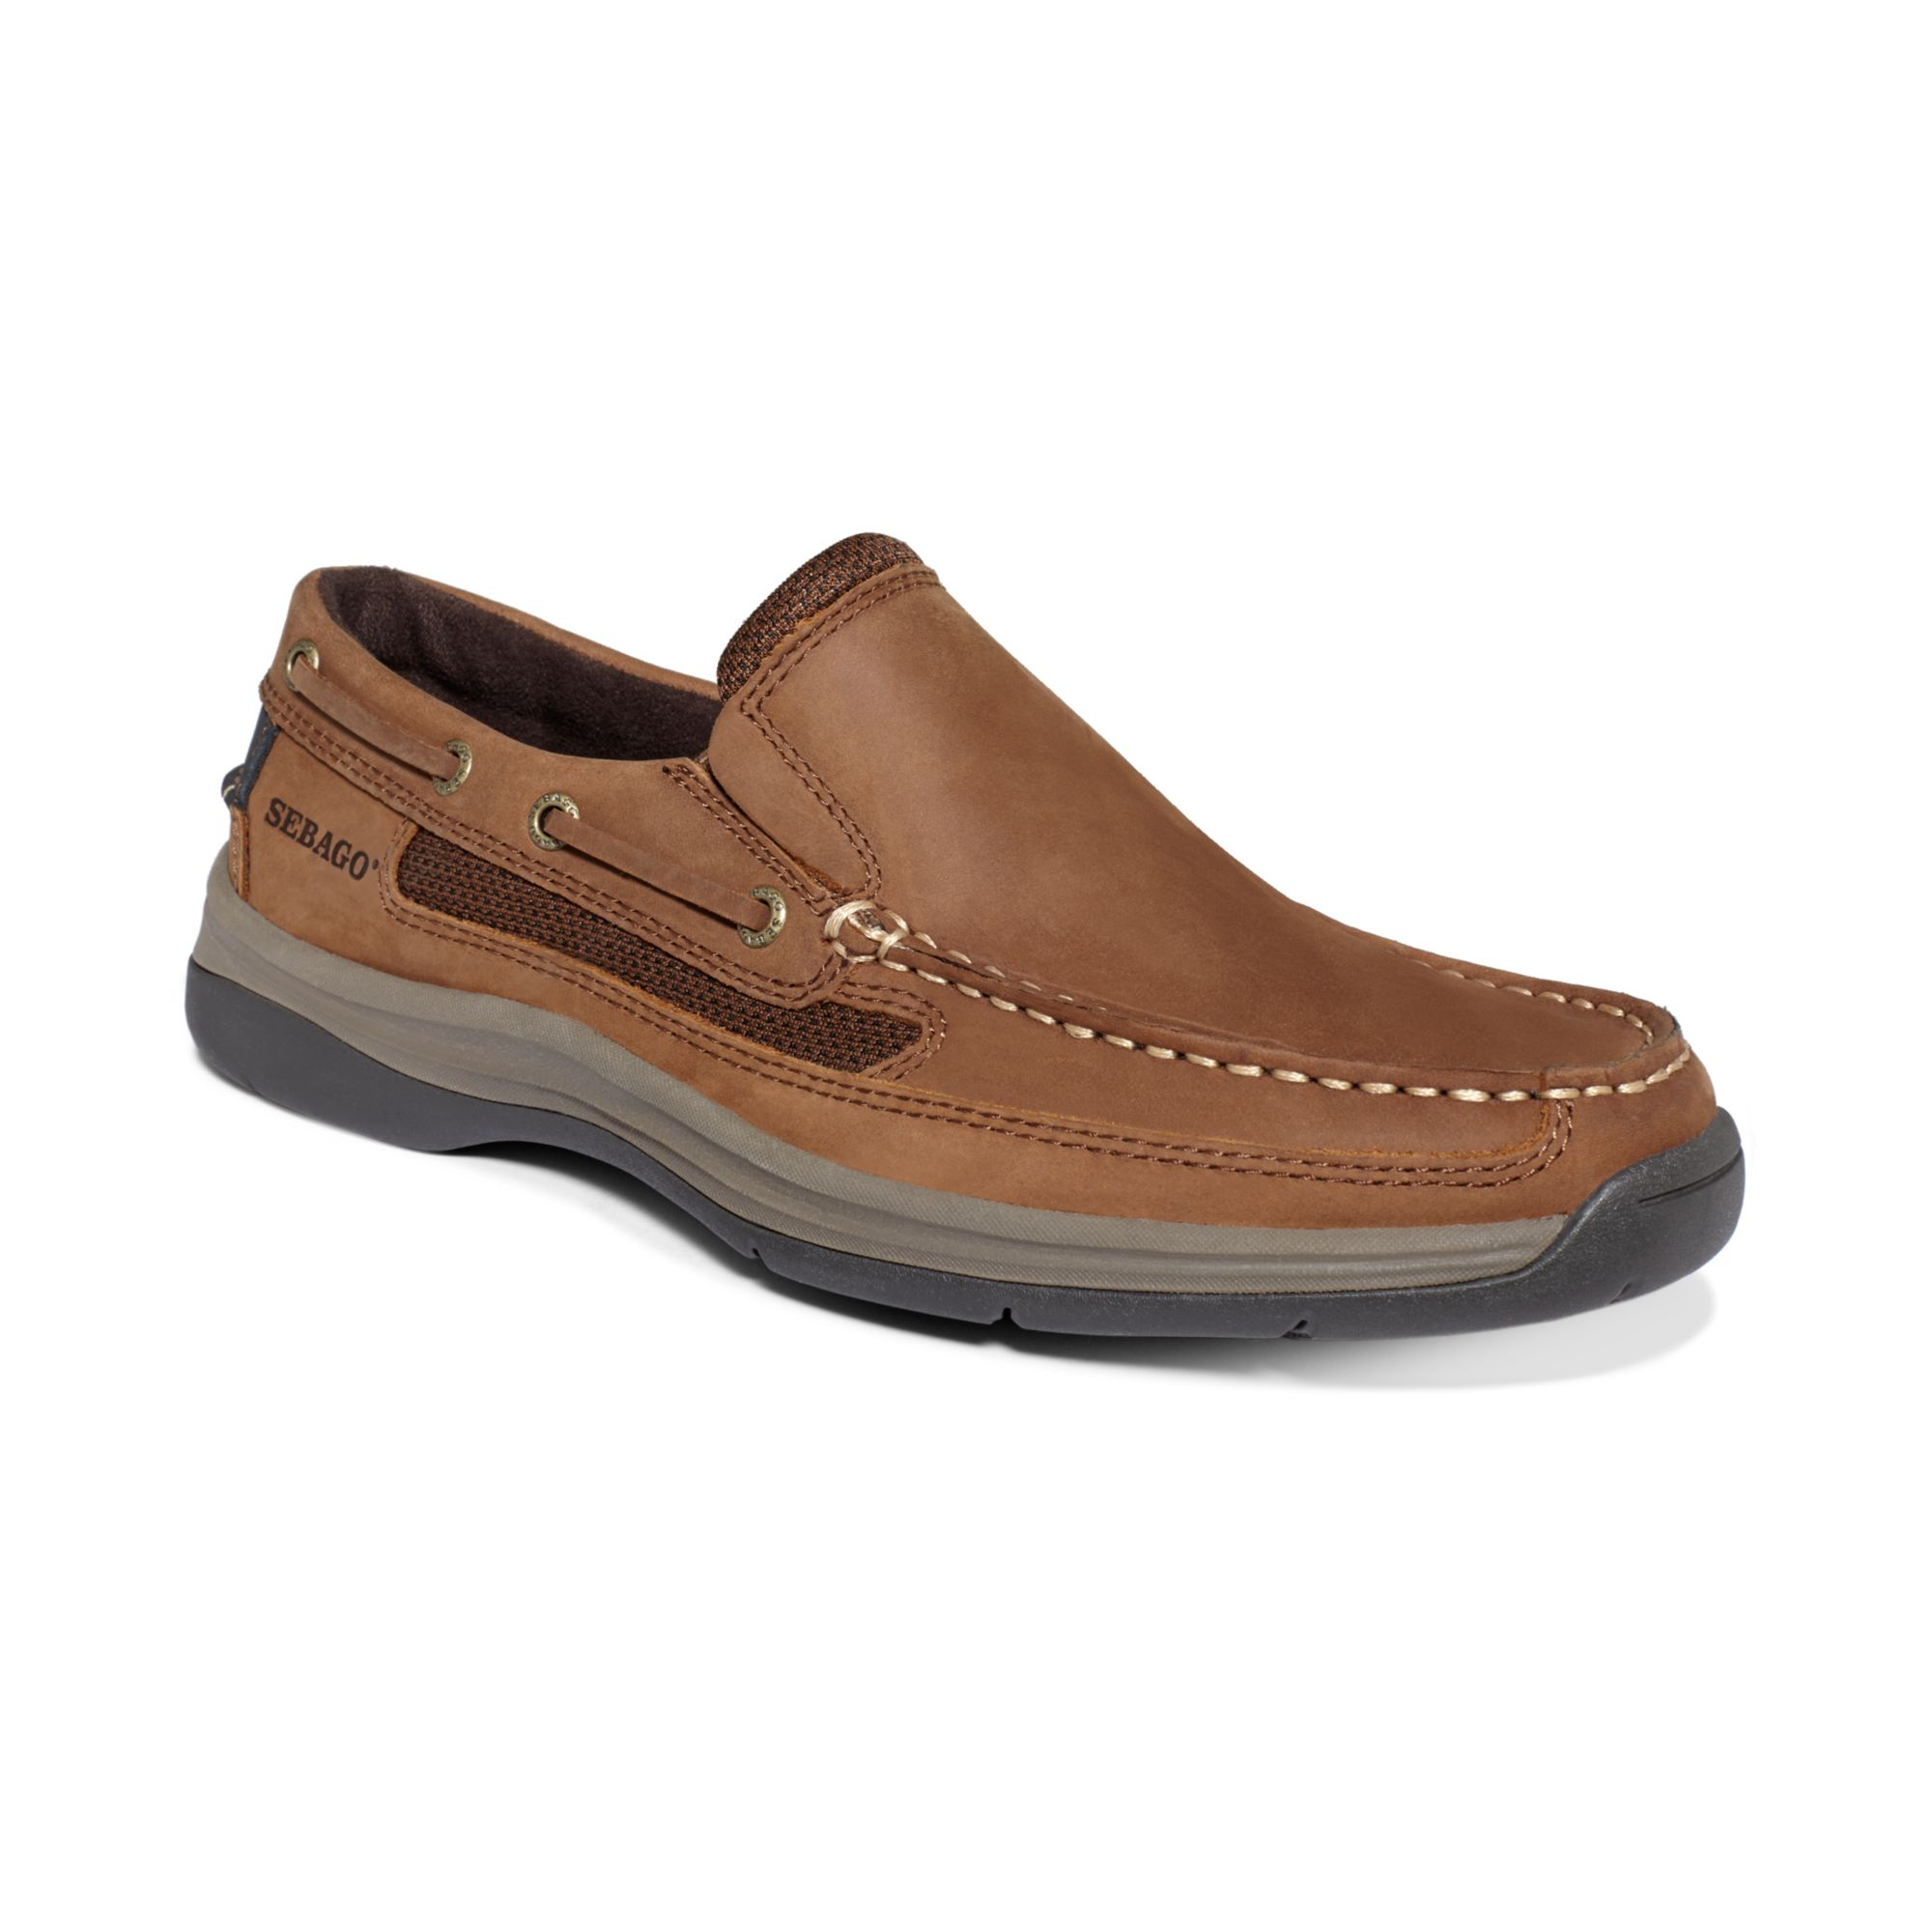 sebago bowman slip on boat shoes in brown for